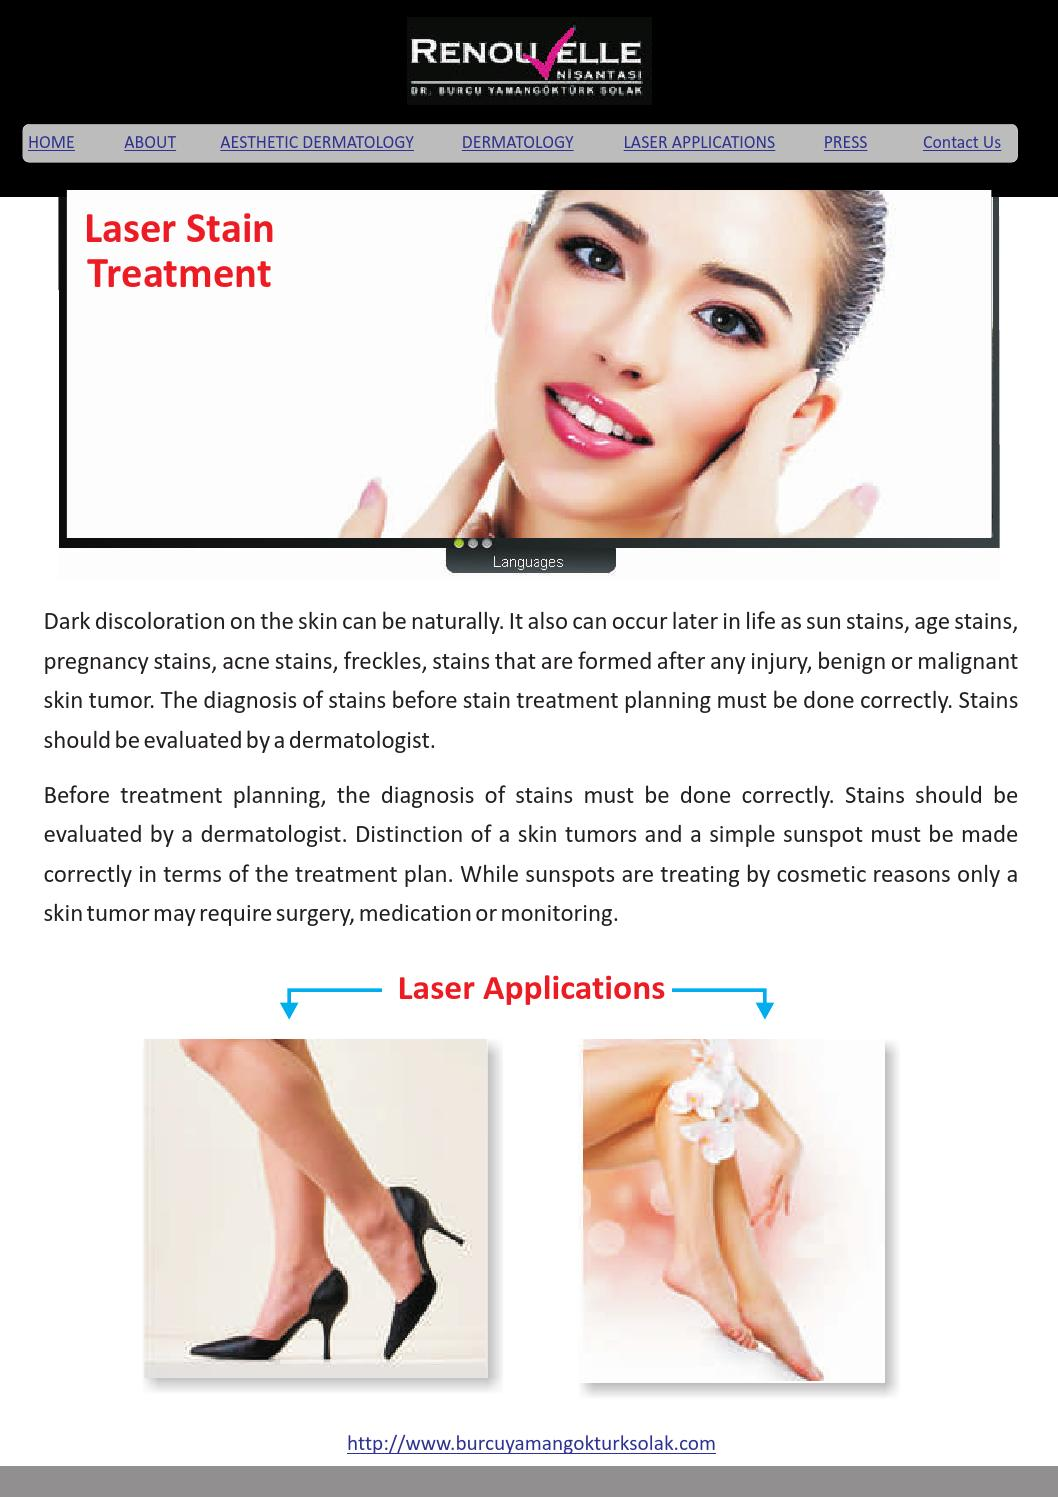 Laser stain treatment by burcuyamango - issuu